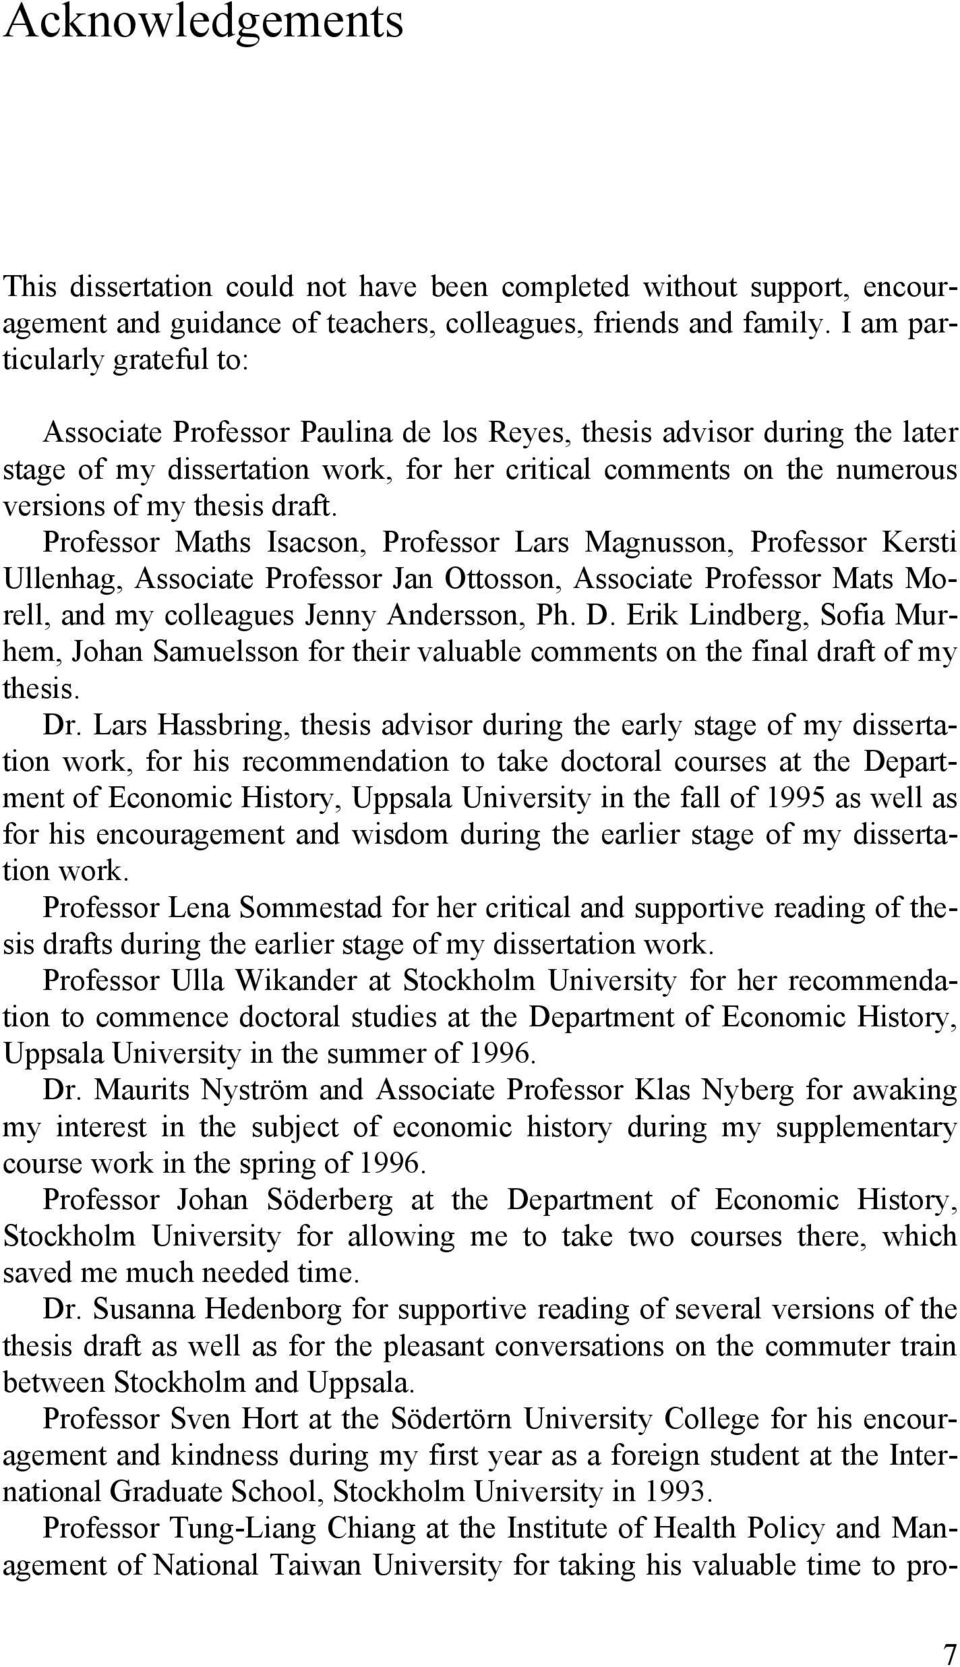 draft. Professor Maths Isacson, Professor Lars Magnusson, Professor Kersti Ullenhag, Associate Professor Jan Ottosson, Associate Professor Mats Morell, and my colleagues Jenny Andersson, Ph. D.